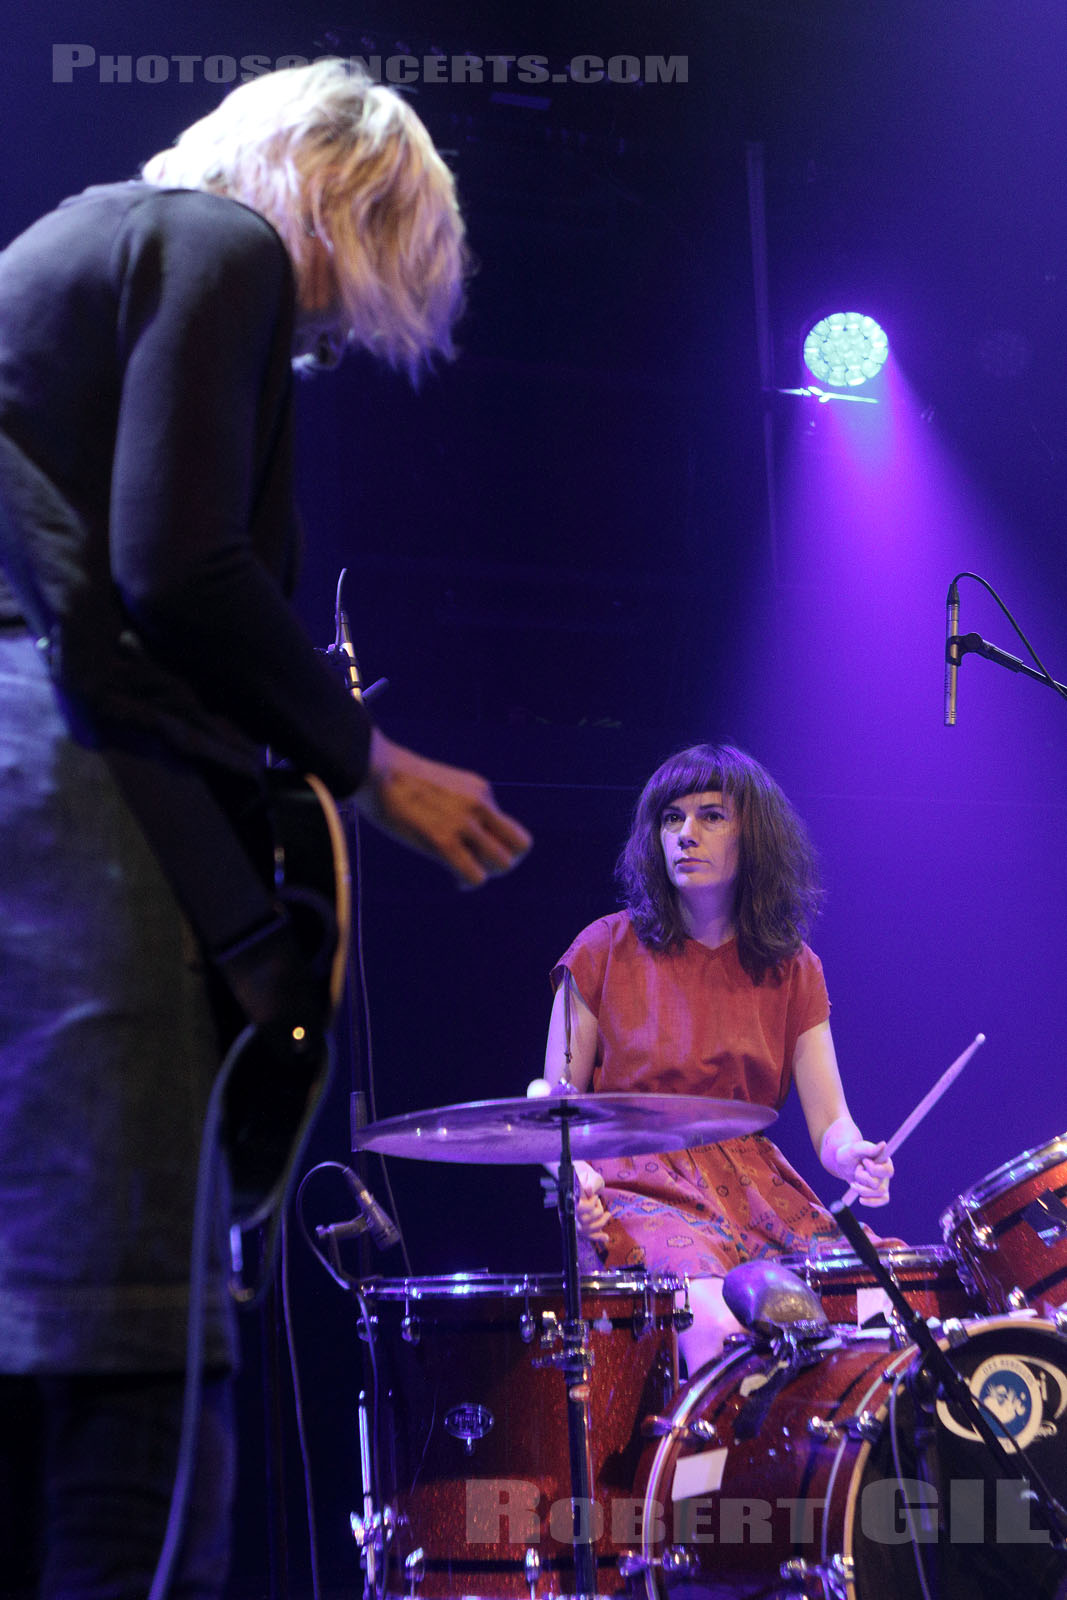 MASSICOT - 2017-05-23 - PARIS - Gaite Lyrique